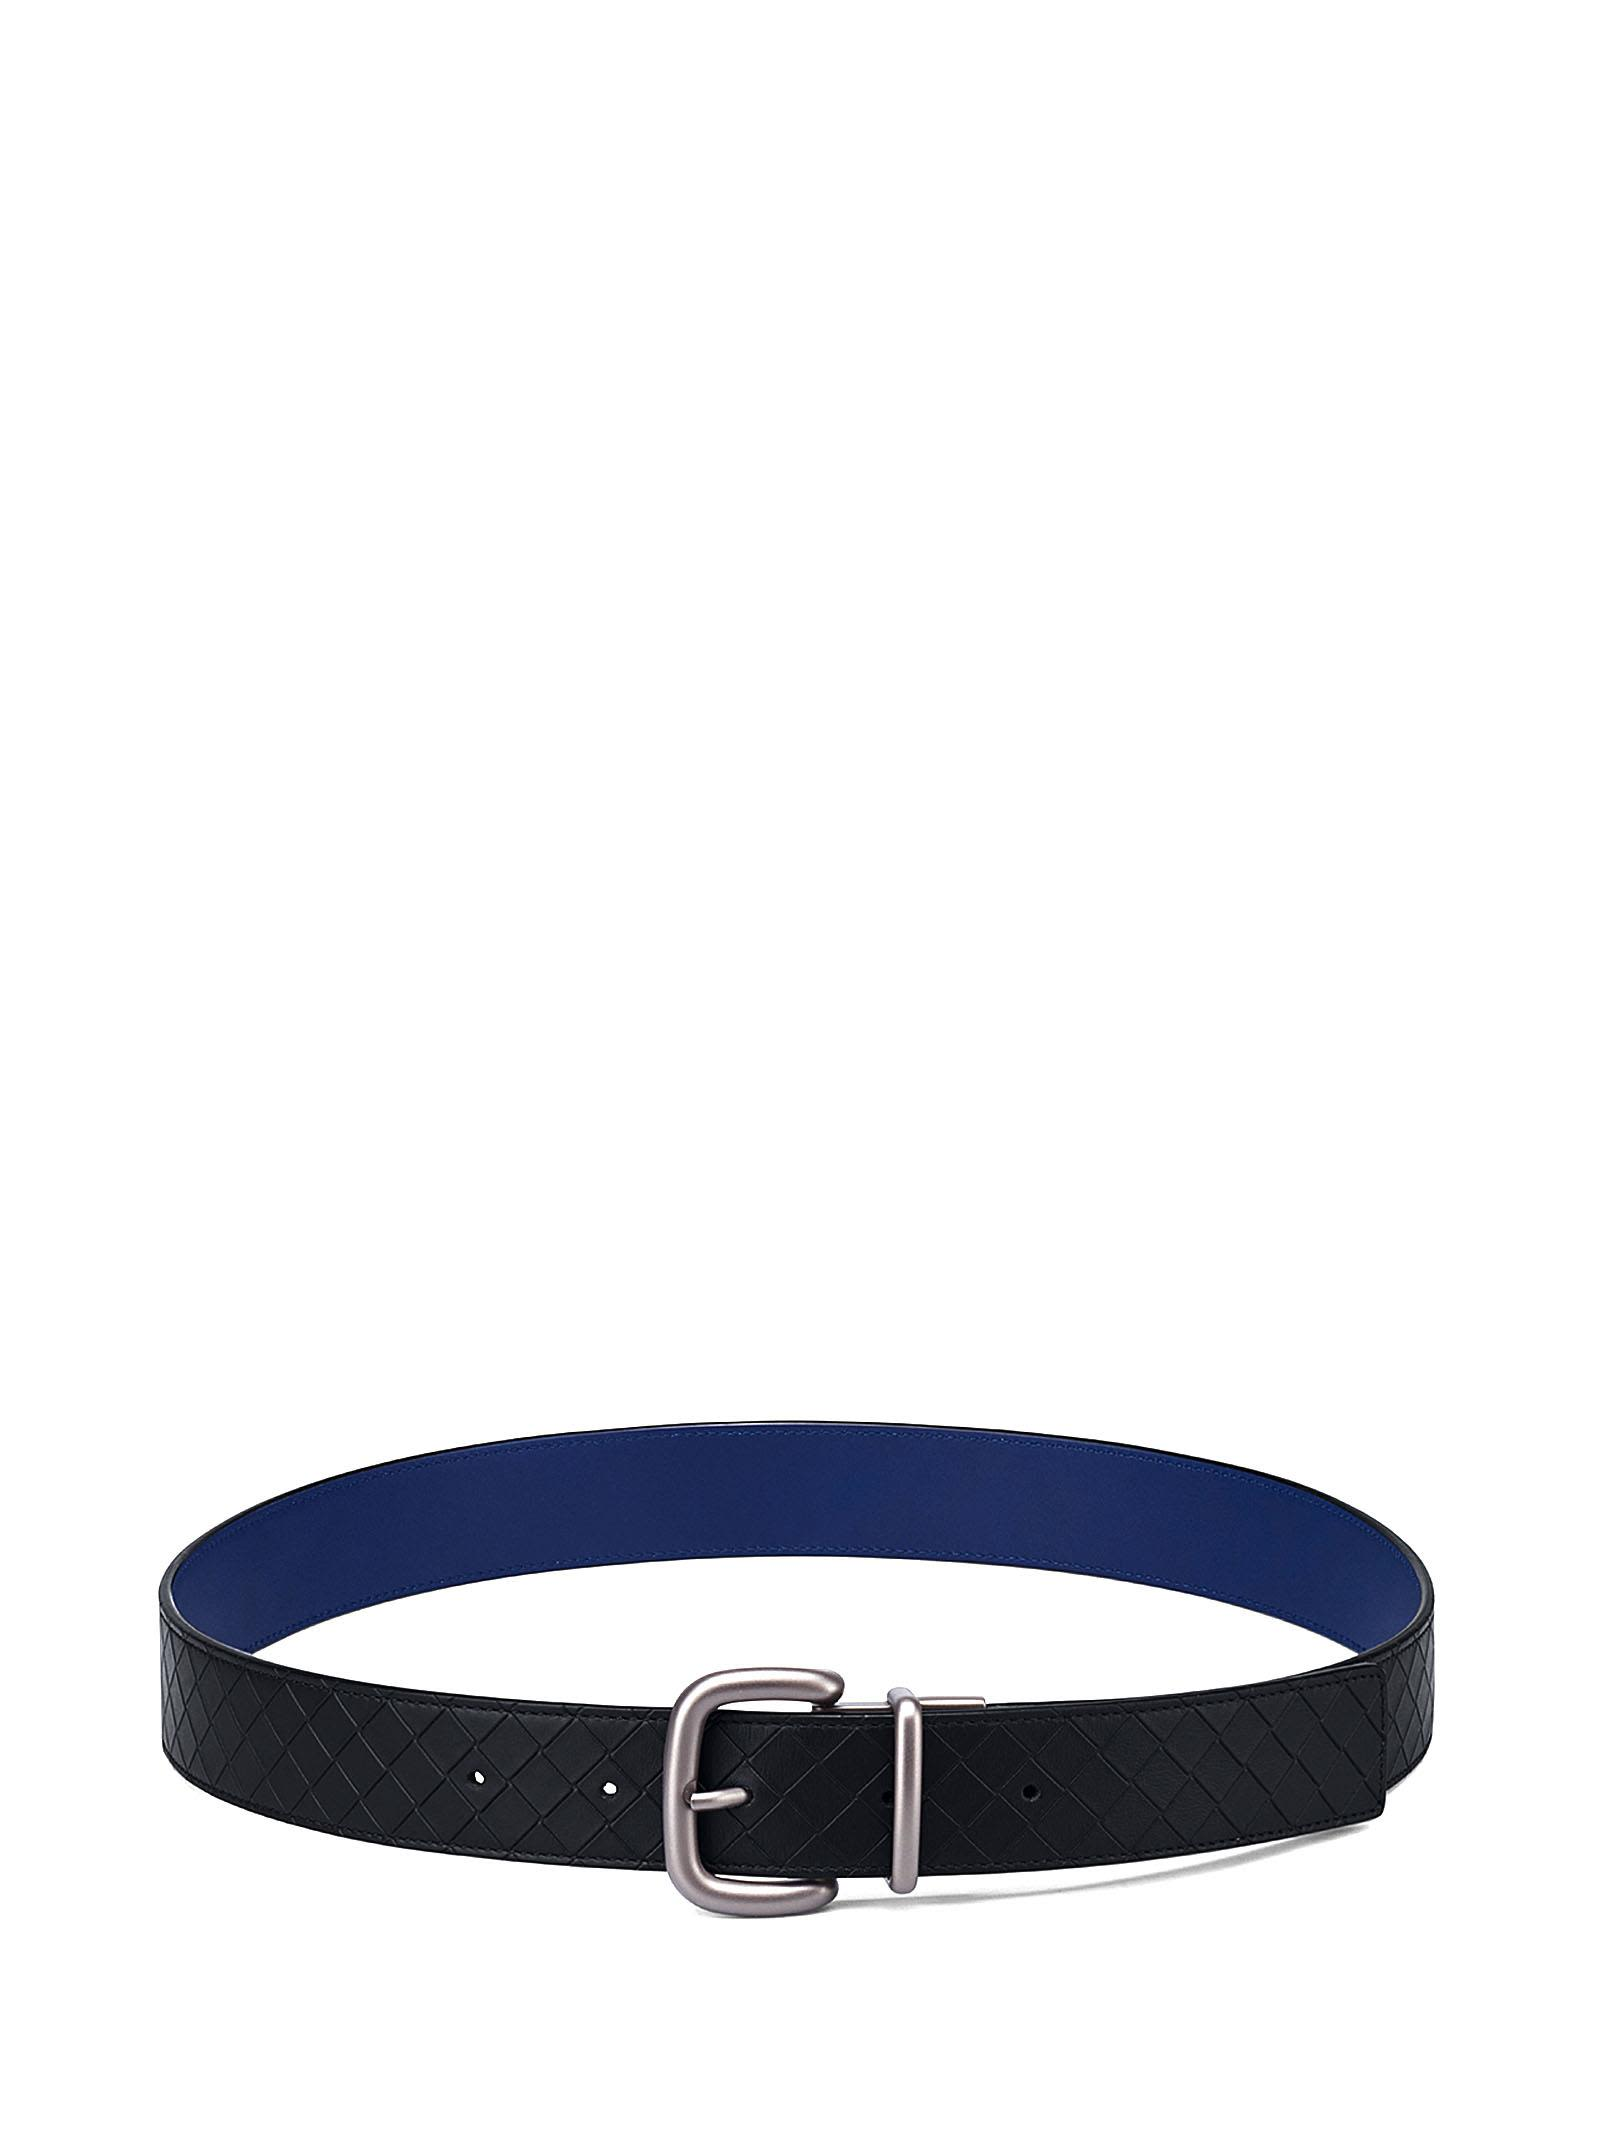 BOTTEGA VENETA NERO-ATLANTIC CALF BELT